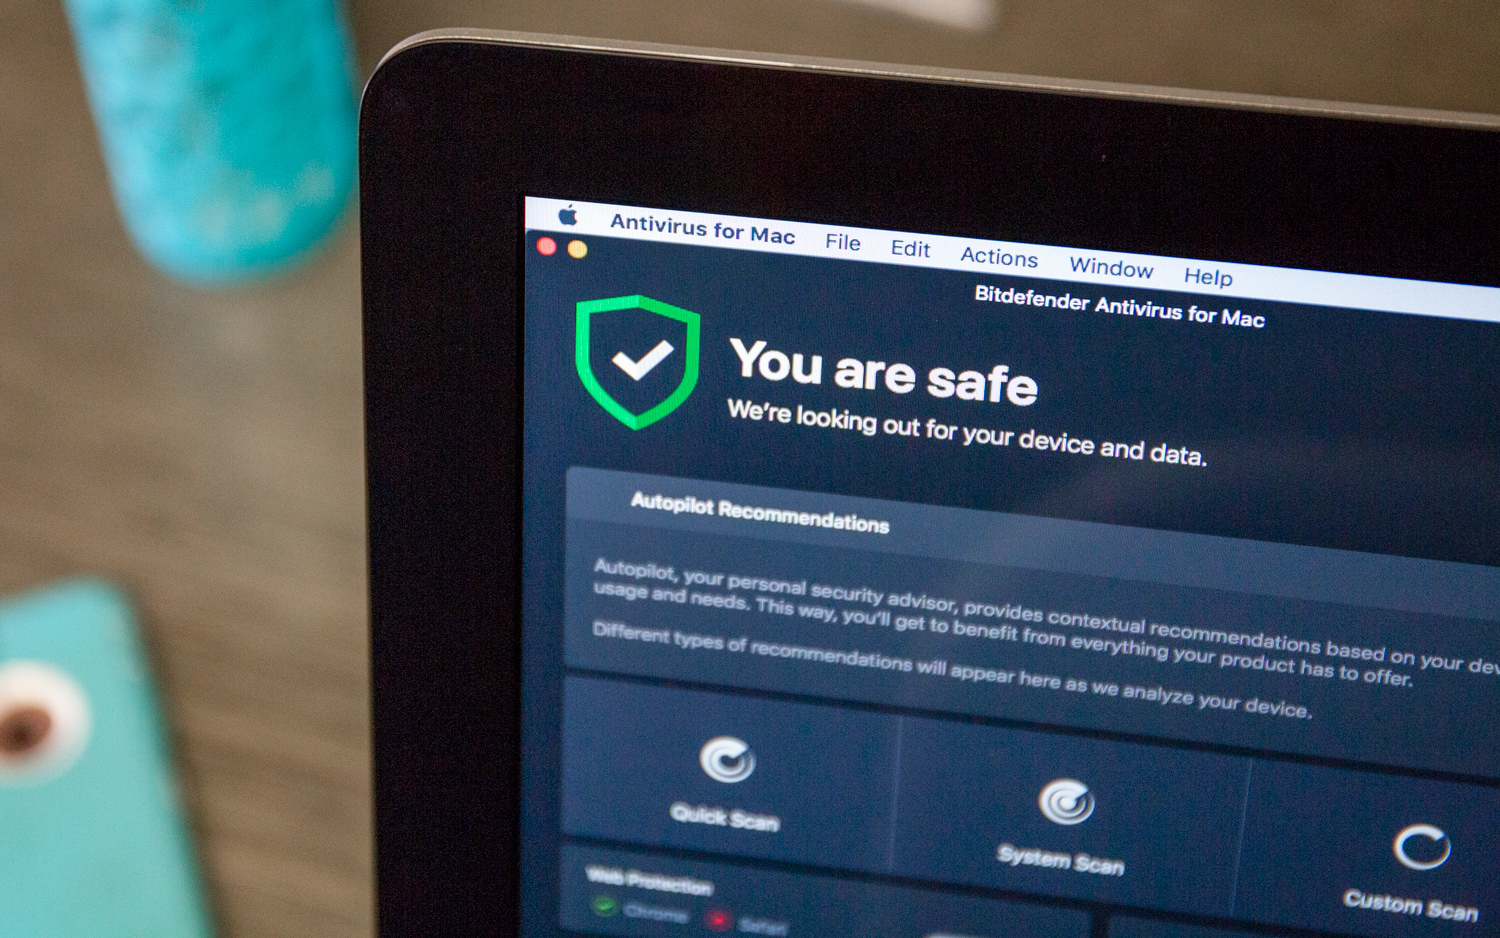 Best Mac Antivirus Software of 2019 - Virus Protection for Macs